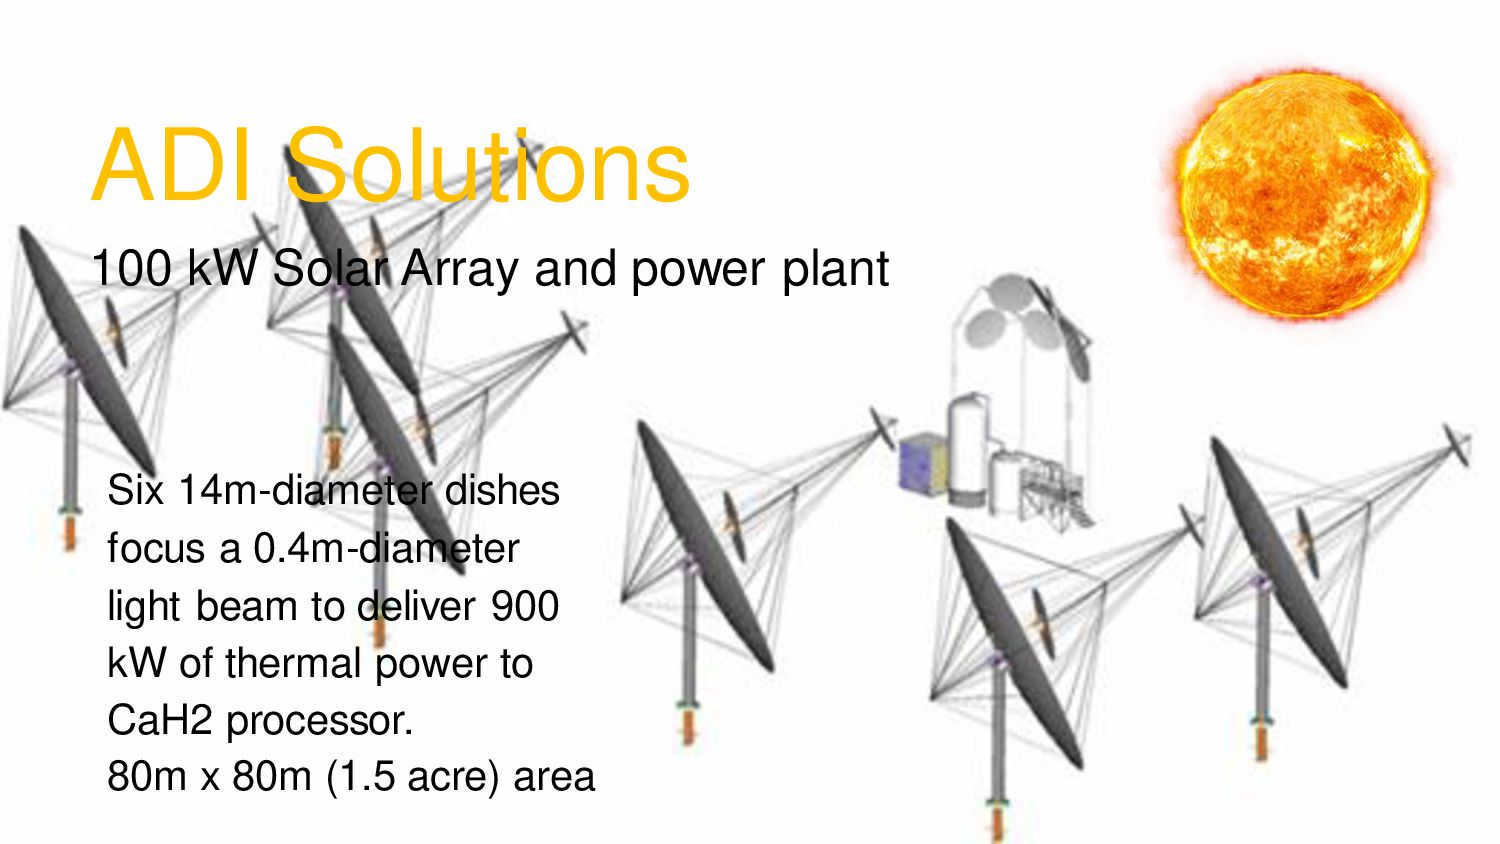 ADI Solutions 100 kW Solar Array and power plan...